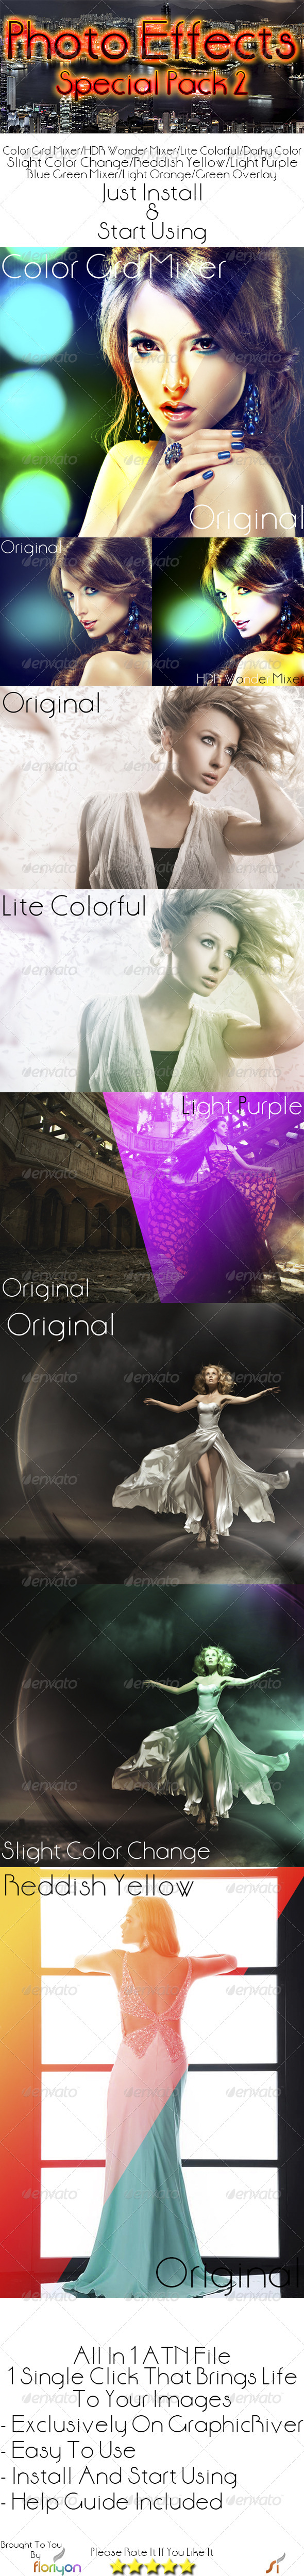 GraphicRiver Photo Effects Special Pack 2 5189273